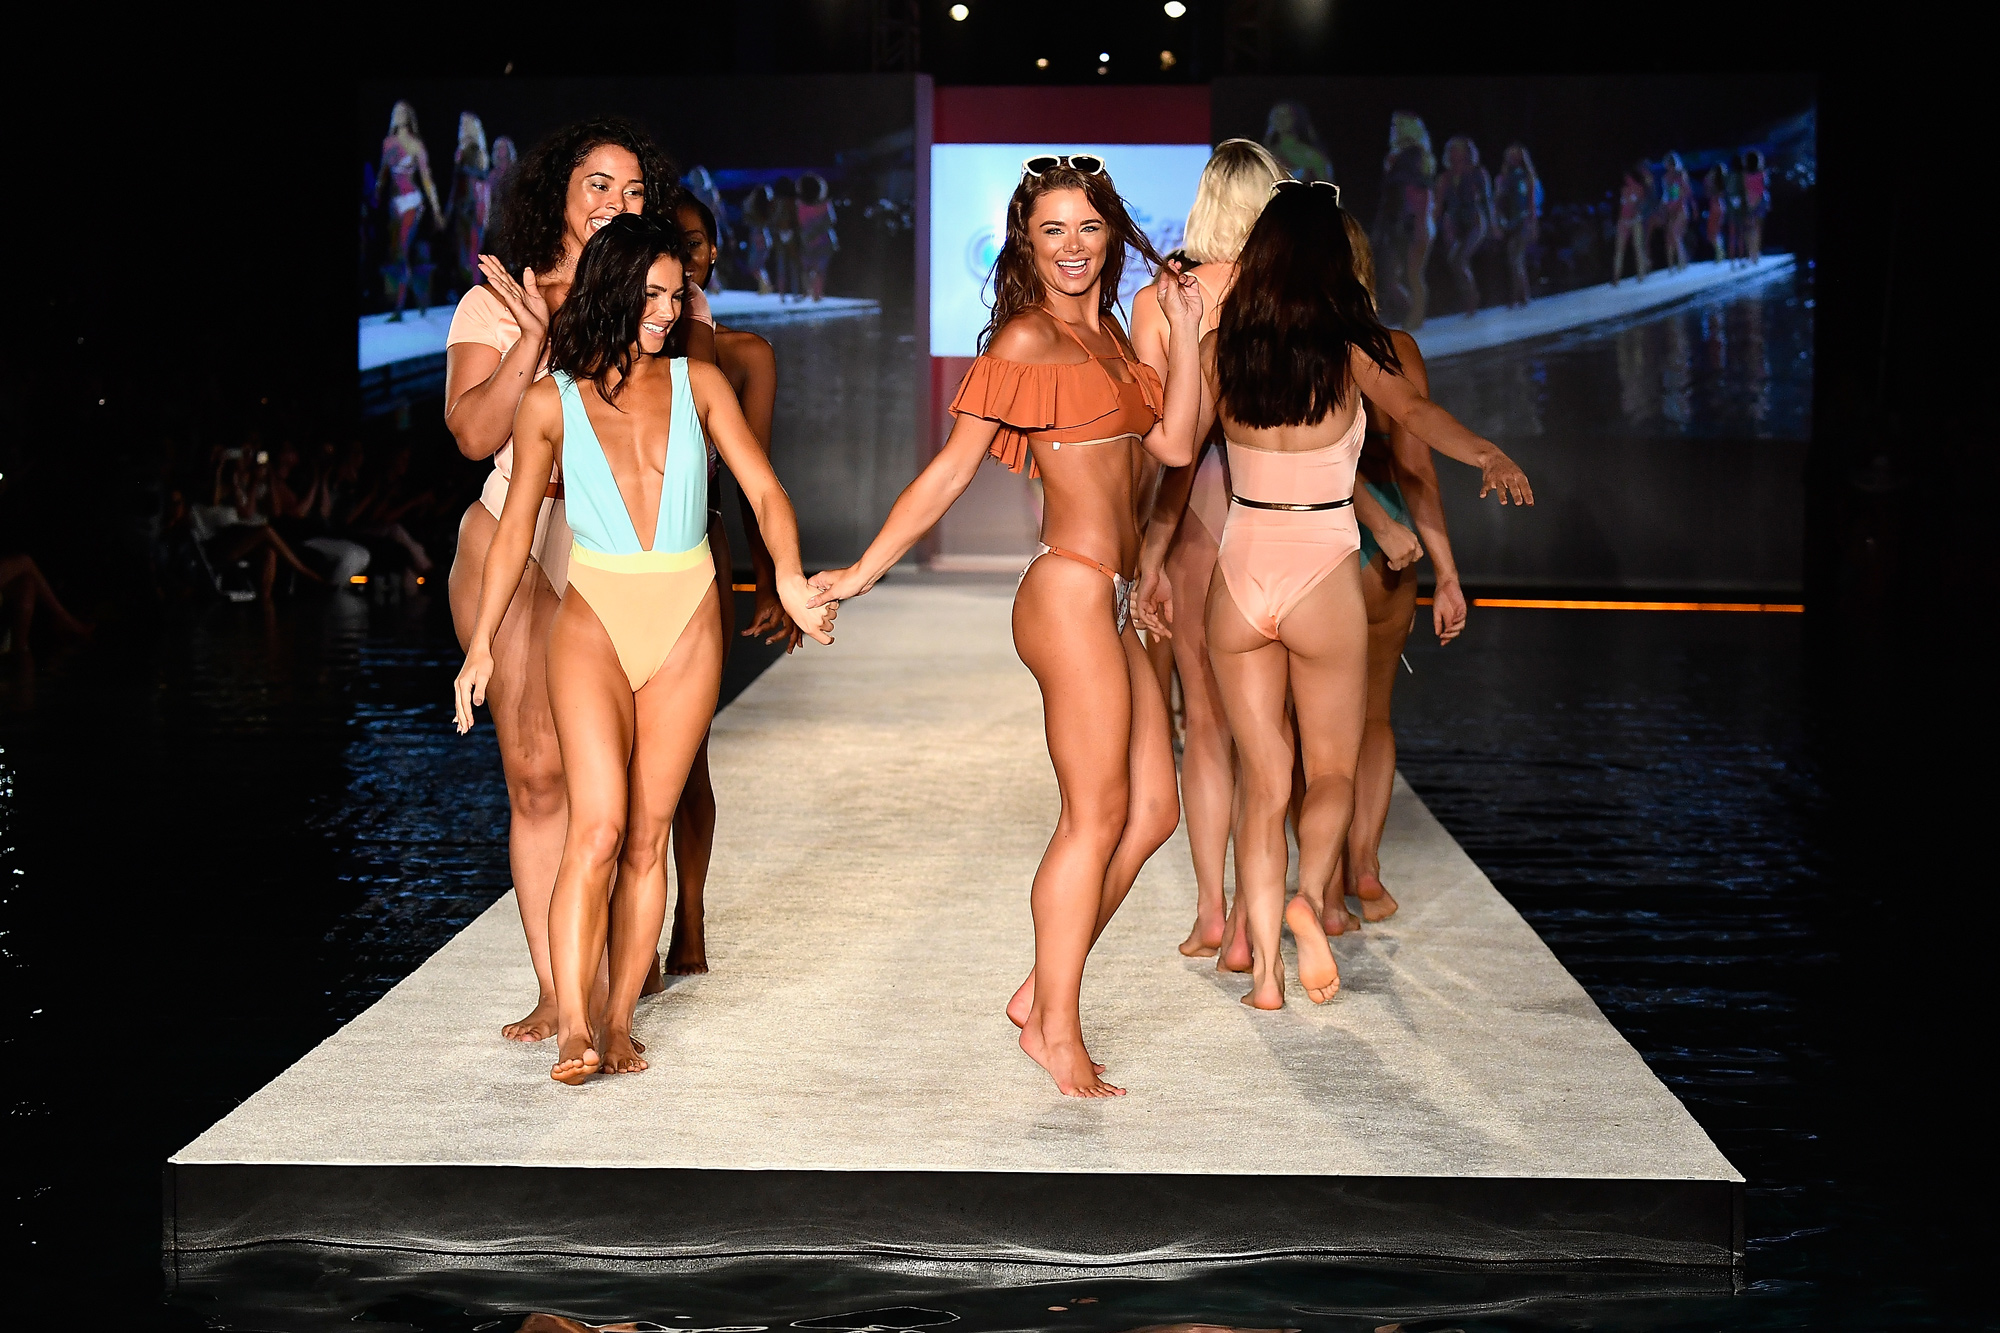 SI Swimsuit Makes a Splash at Miami Swim Week with Swimwear Line for Every Woman